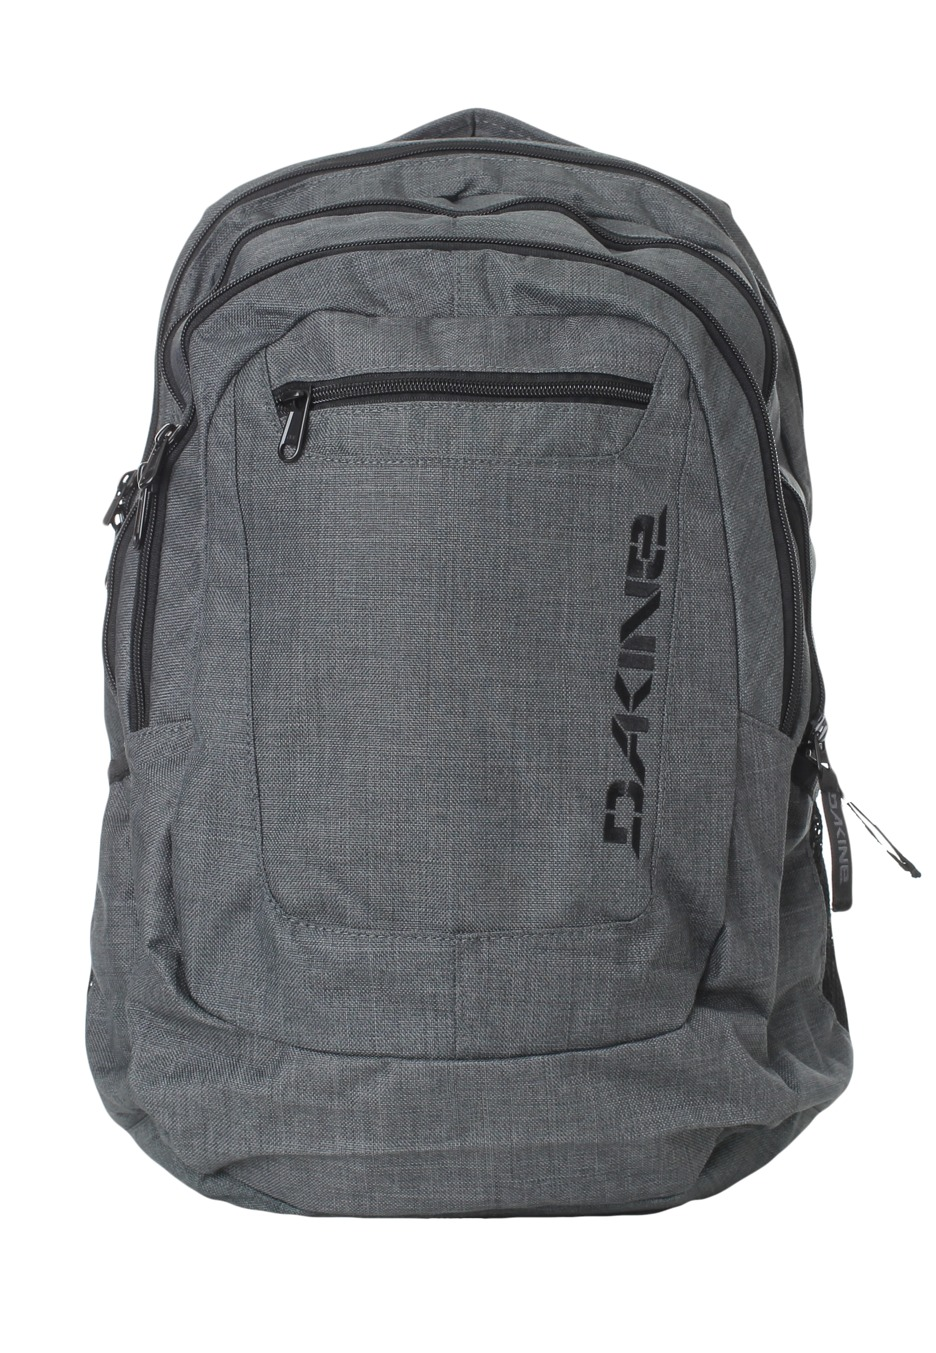 Dakine - Element Carbon - Backpack - Impericon.com Worldwide